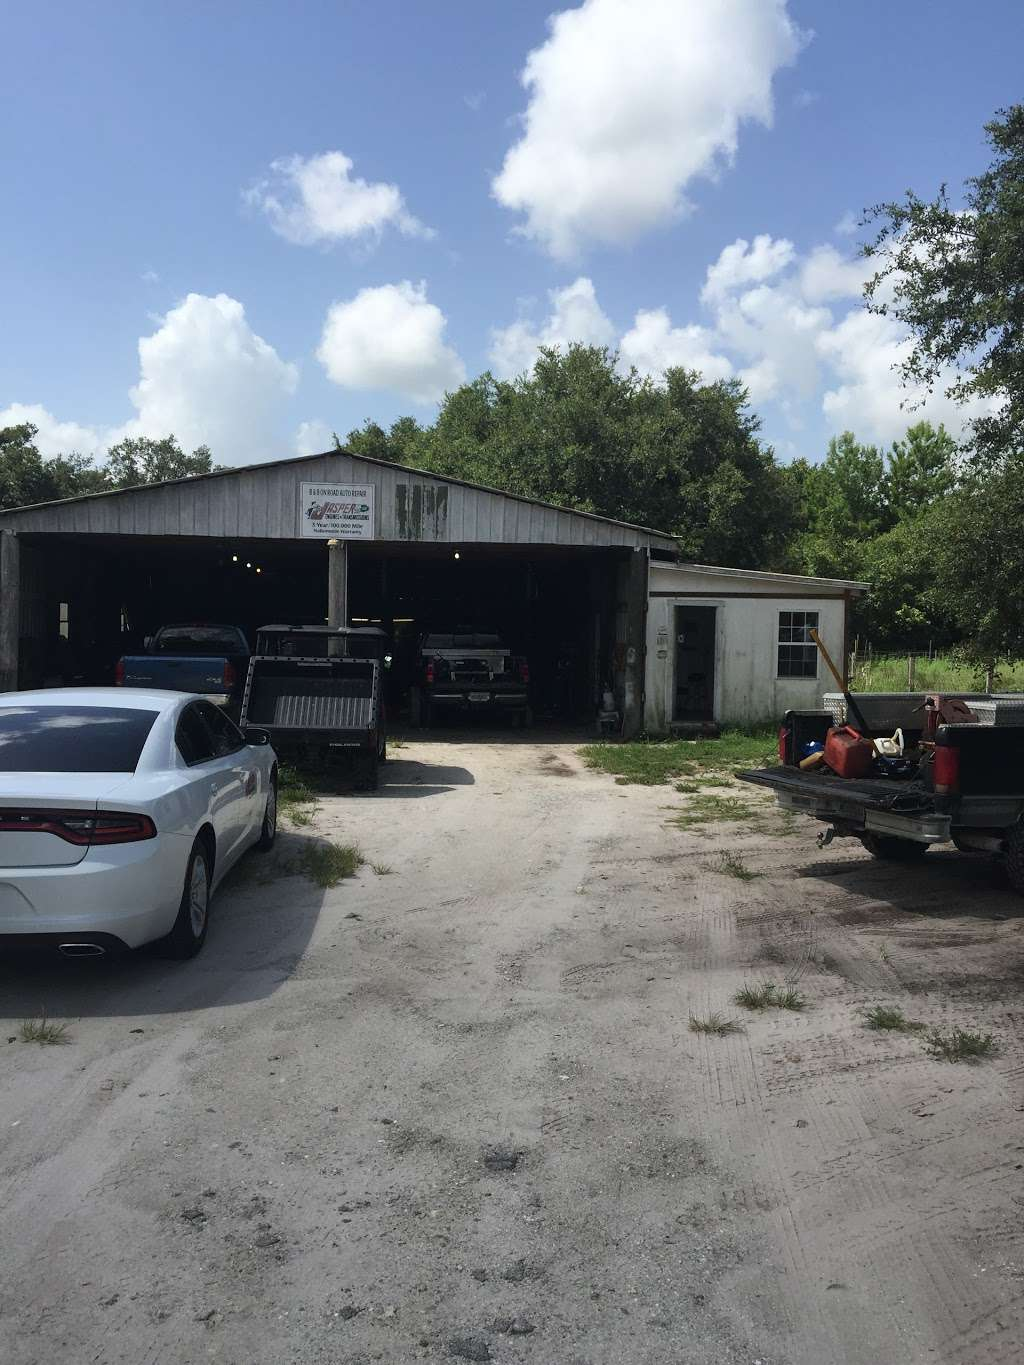 B & B On Road Auto Repair - car repair  | Photo 6 of 9 | Address: 710 S Canoe Creek Rd, Kenansville, FL 34739, USA | Phone: (407) 908-4173